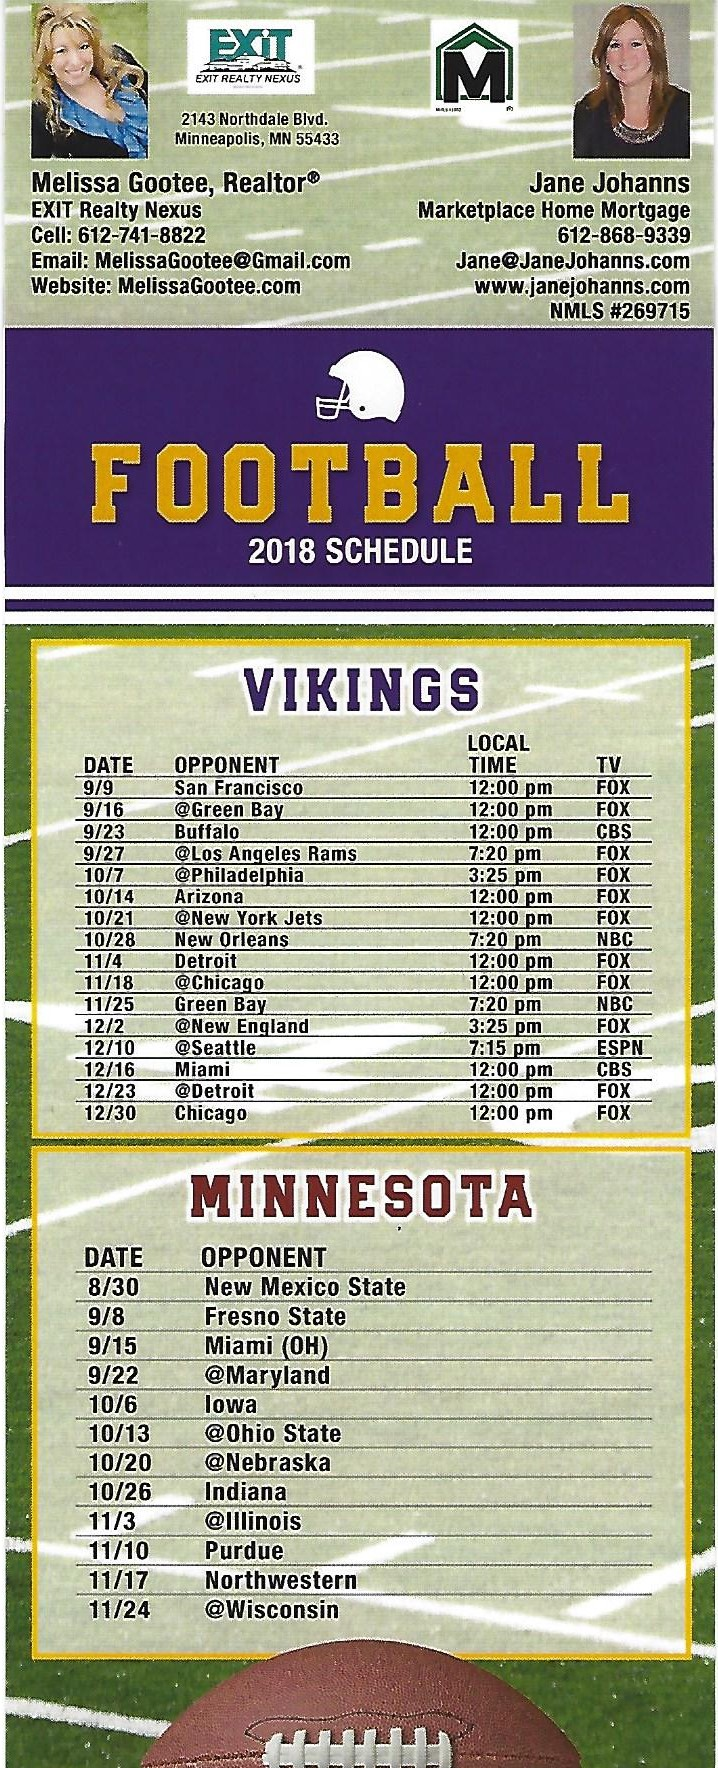 Mn Vikings Schedule 2020.Vikings Football Schedule 2019 2019 Football Schedule 2019